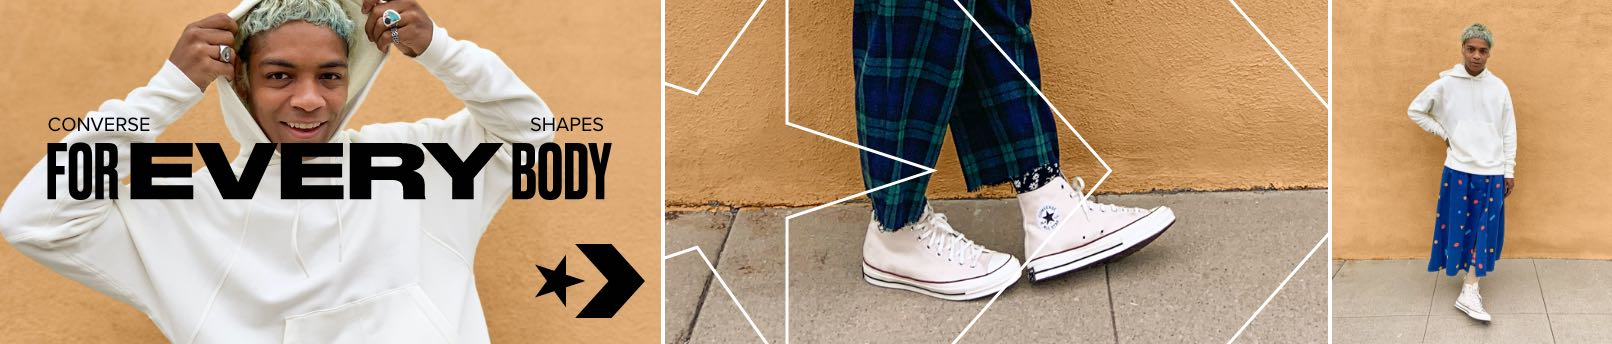 Shop Converse Shapes